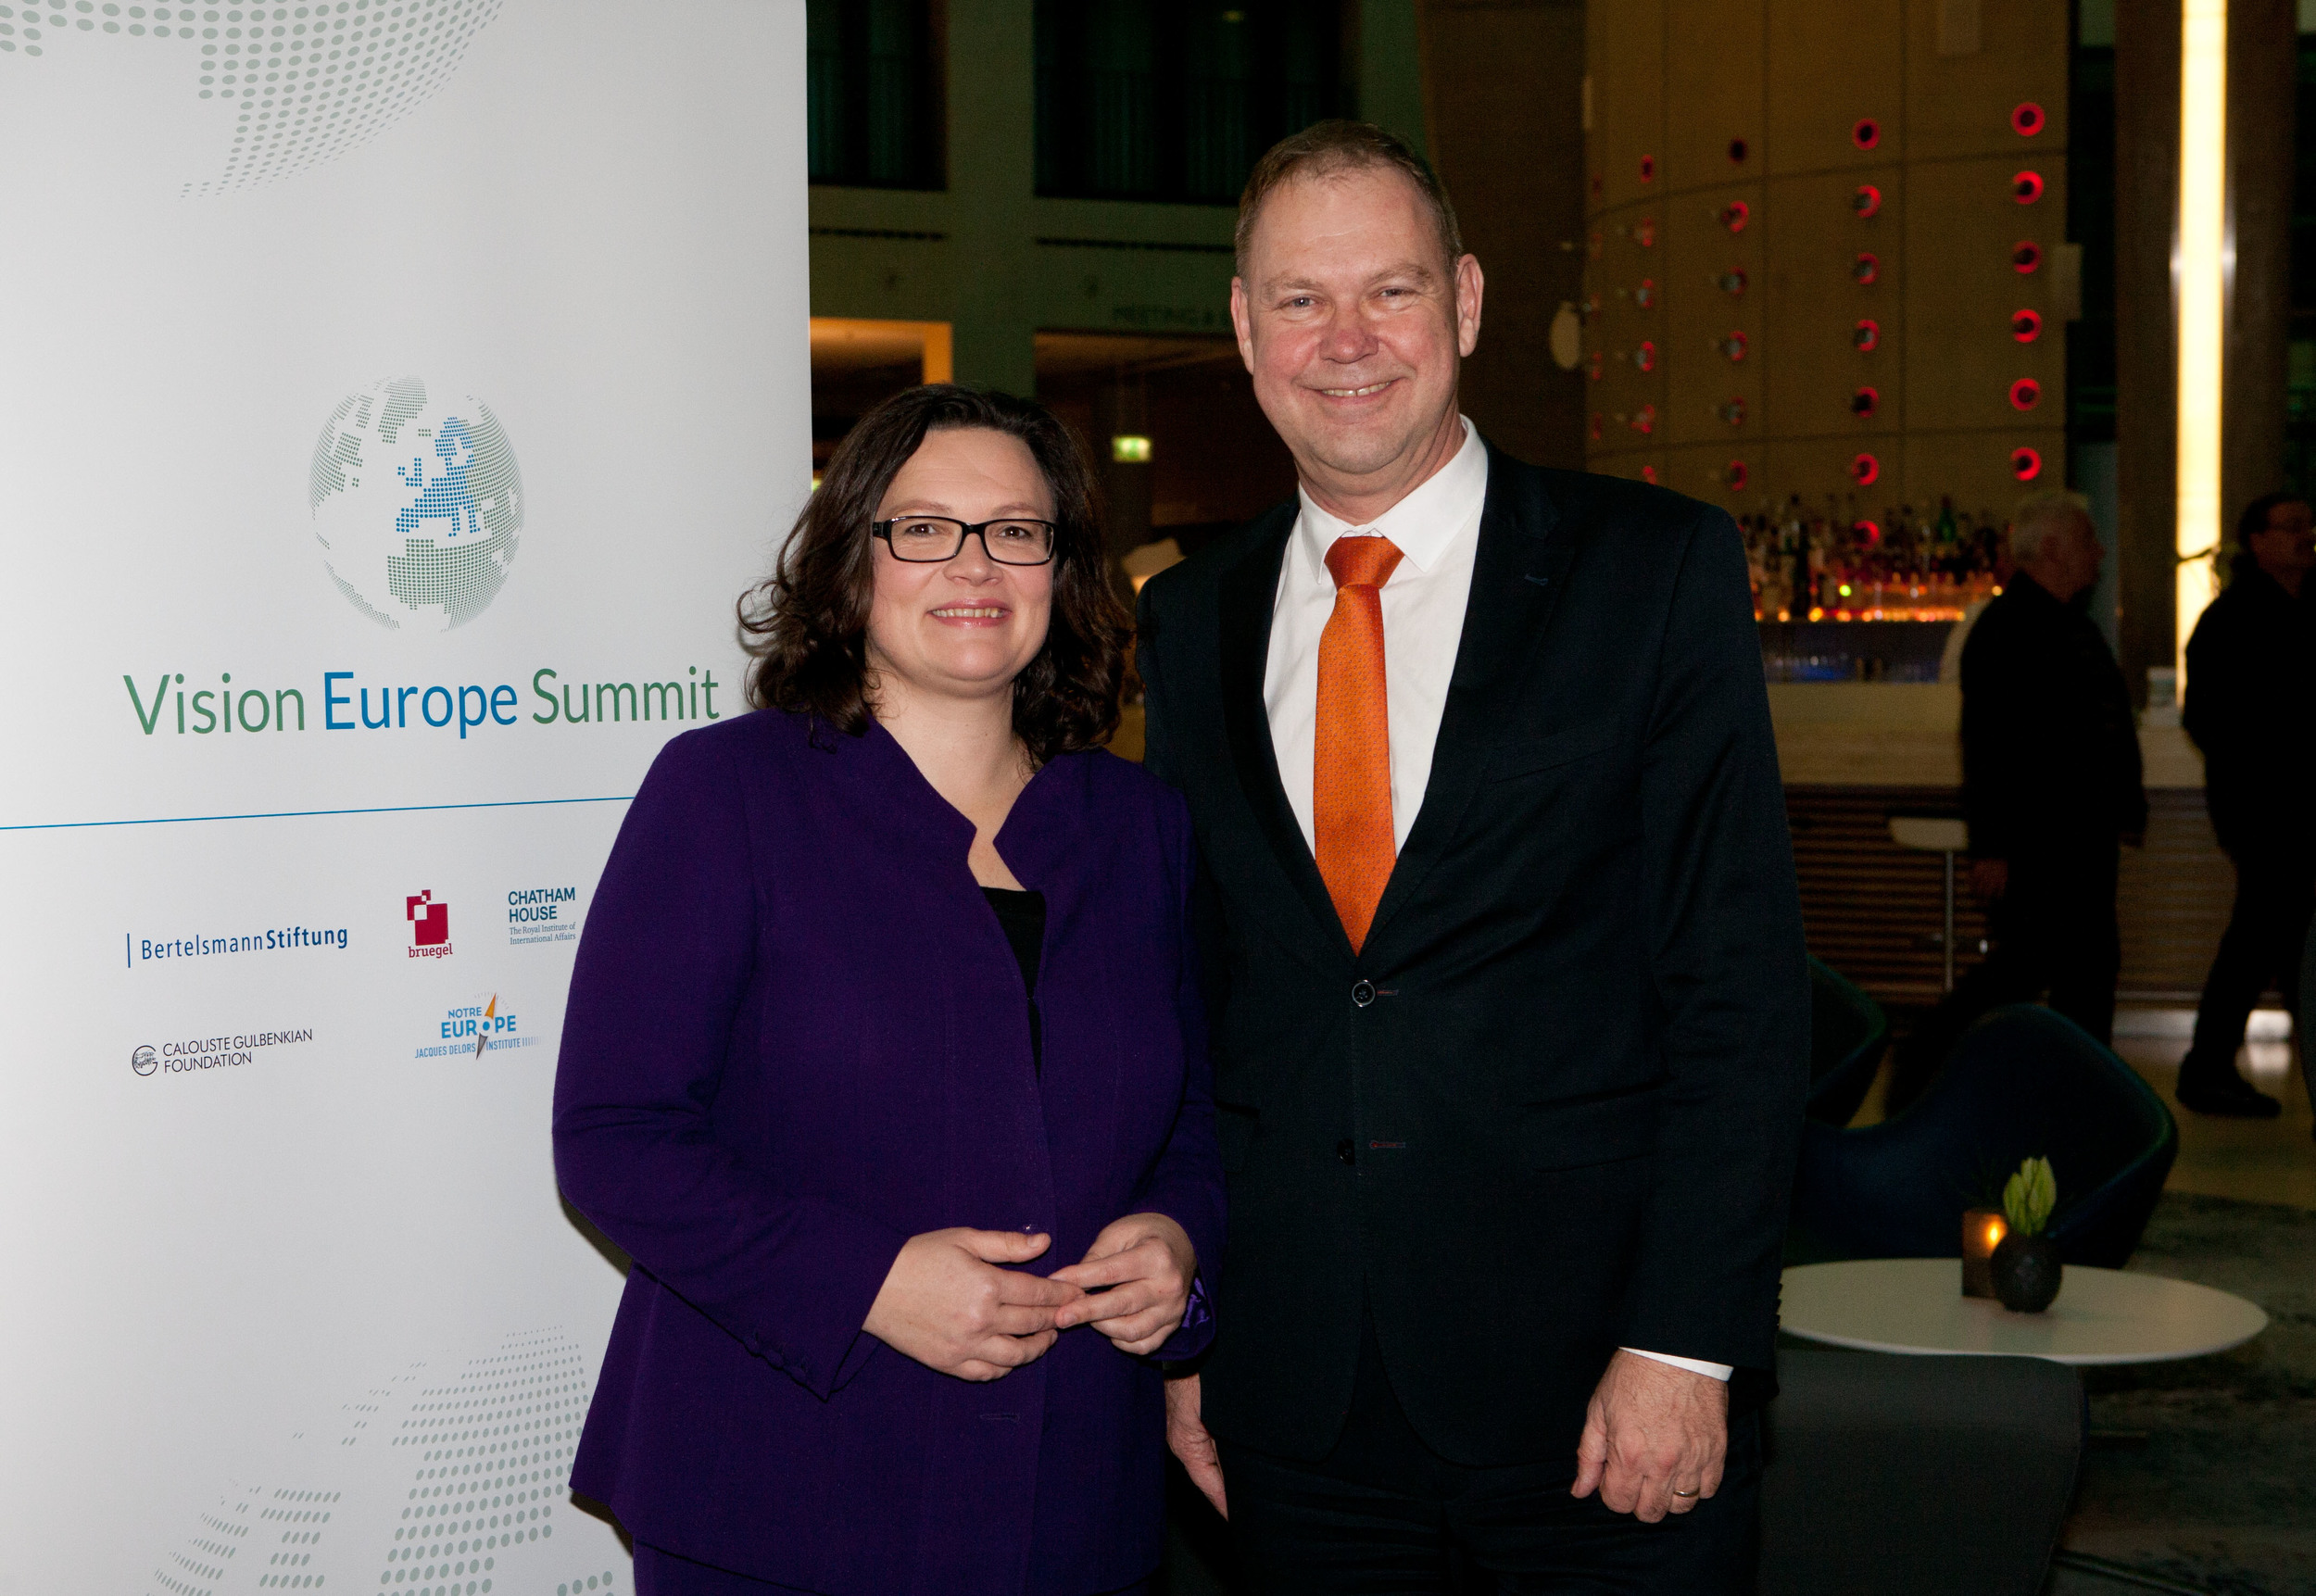 Andrea Nahles, Federal Minister of Labour and Social Affairs; Aart De Geus, Chairman and CEO, Bertelsmann Stiftung